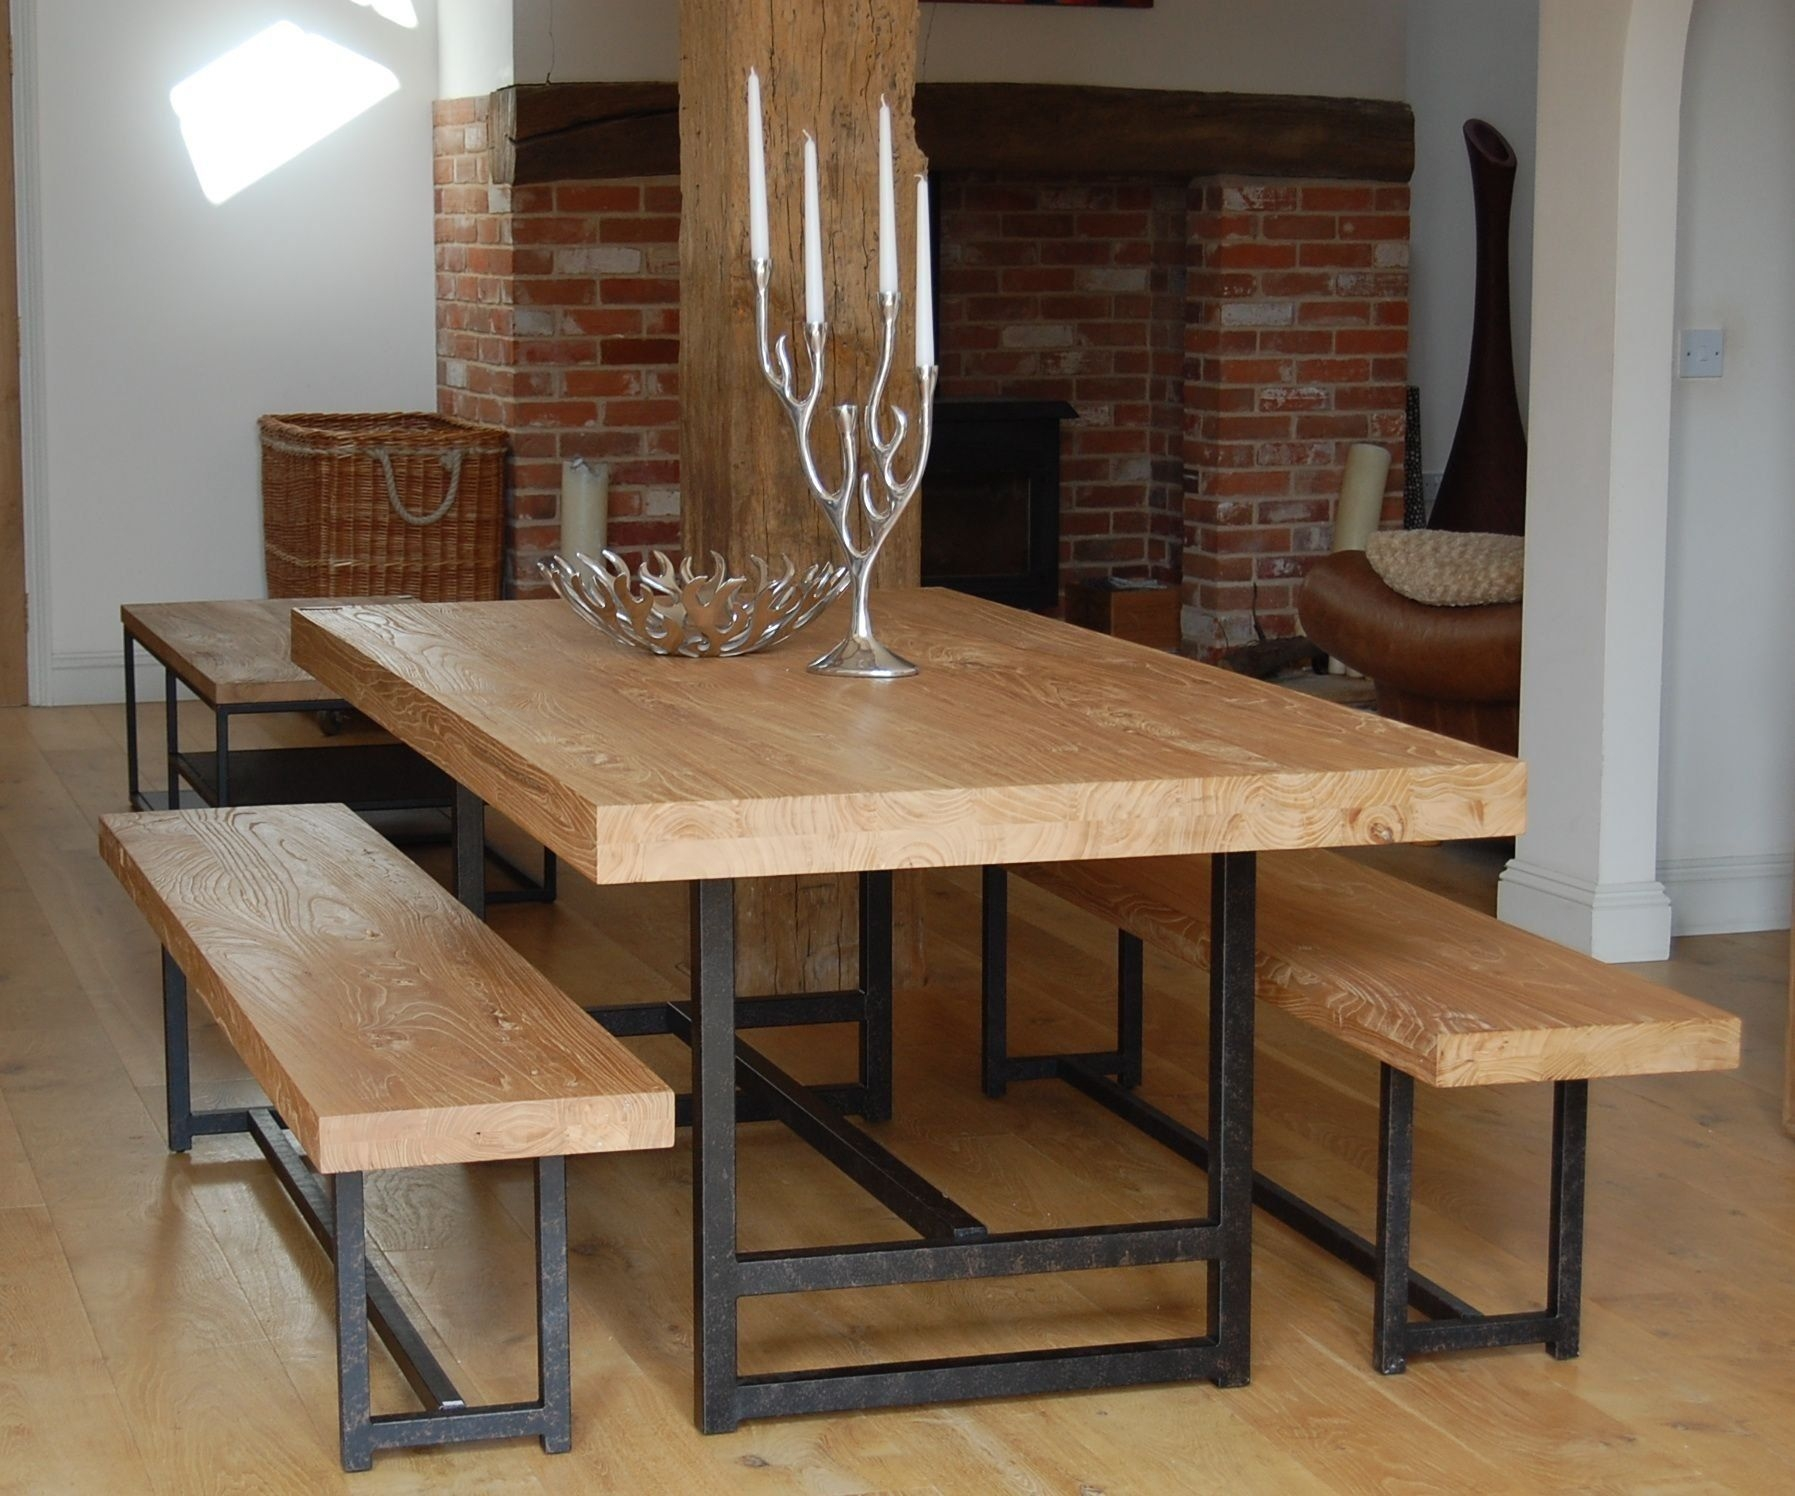 Dining Table With Bench You Ll Love In 2021 Visualhunt